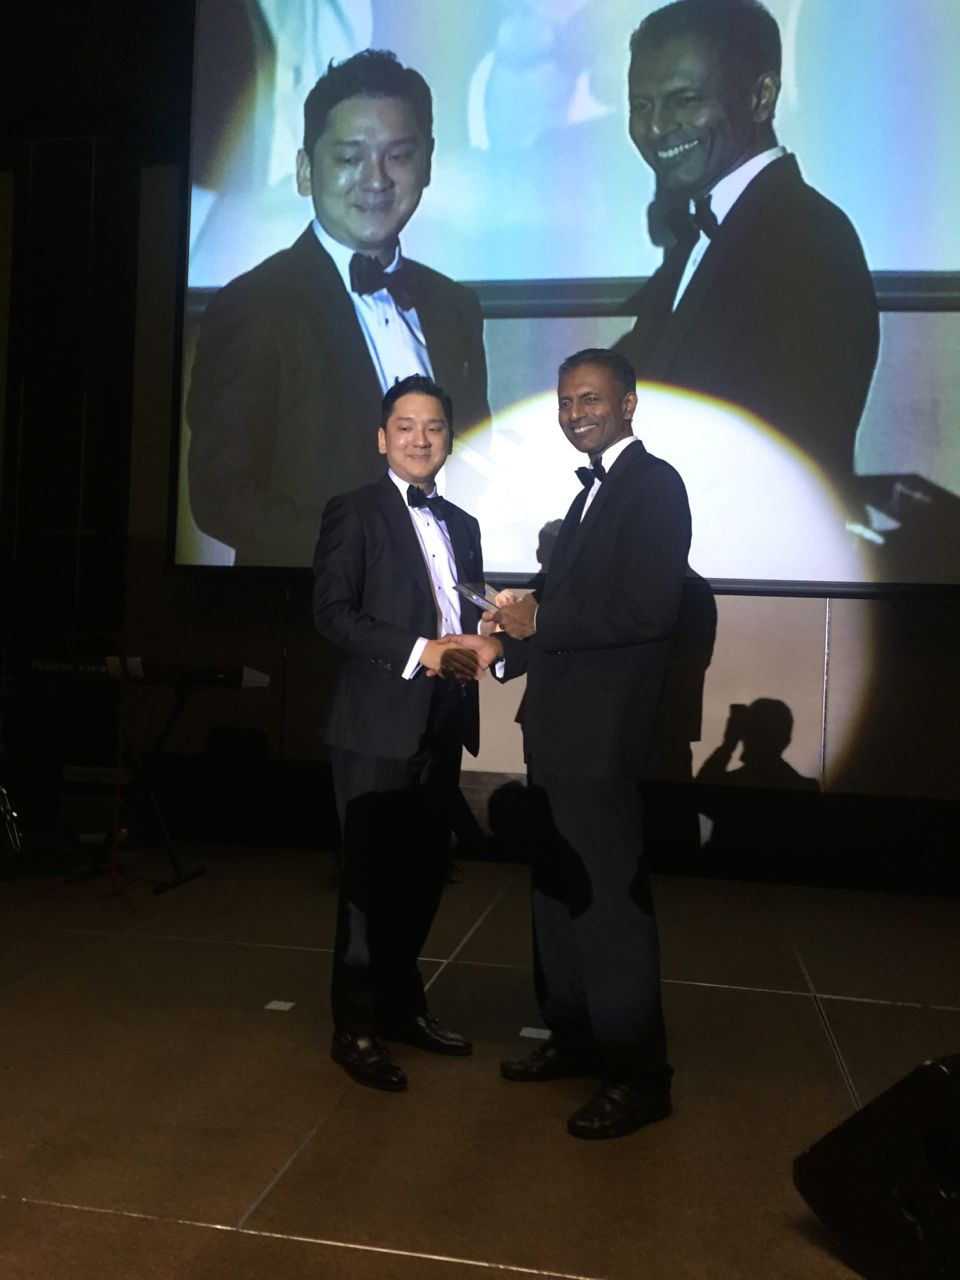 Marcus receiving the Rising Law Firm of the Year